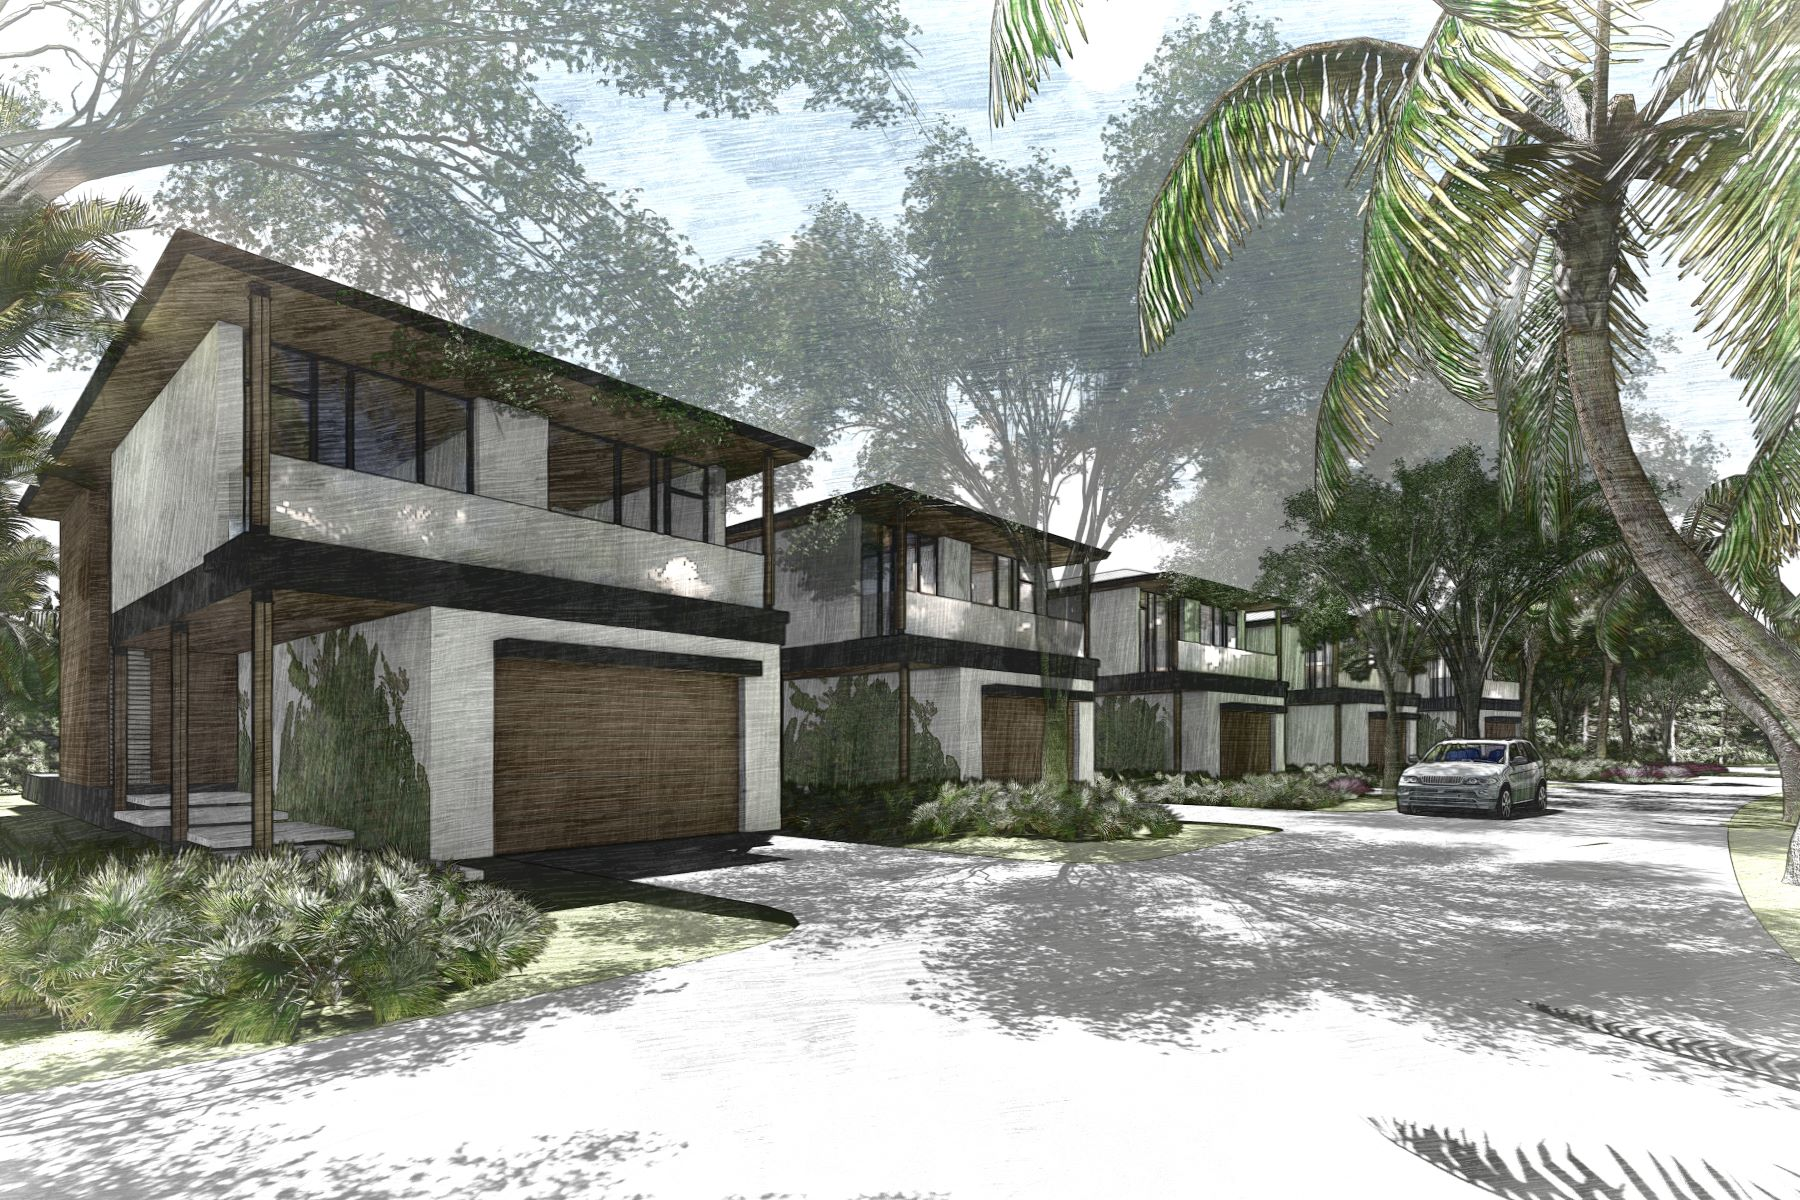 Property のために 売買 アット Direct Riverfront New Construction 4840 S Harbor Drive Vero Beach, フロリダ 32967 アメリカ